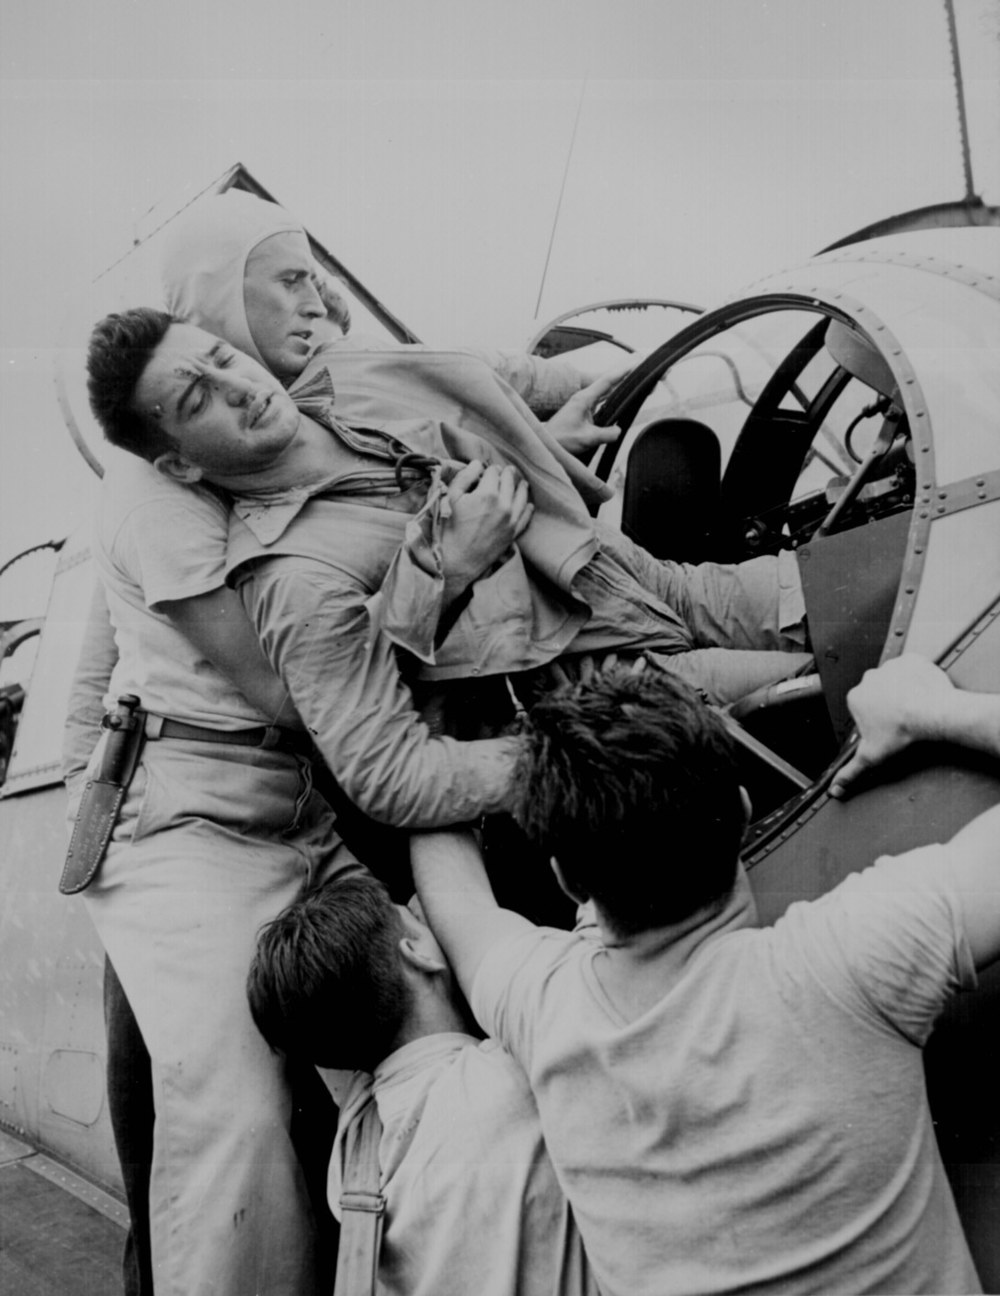 Wounded Turret Gunner, 1943